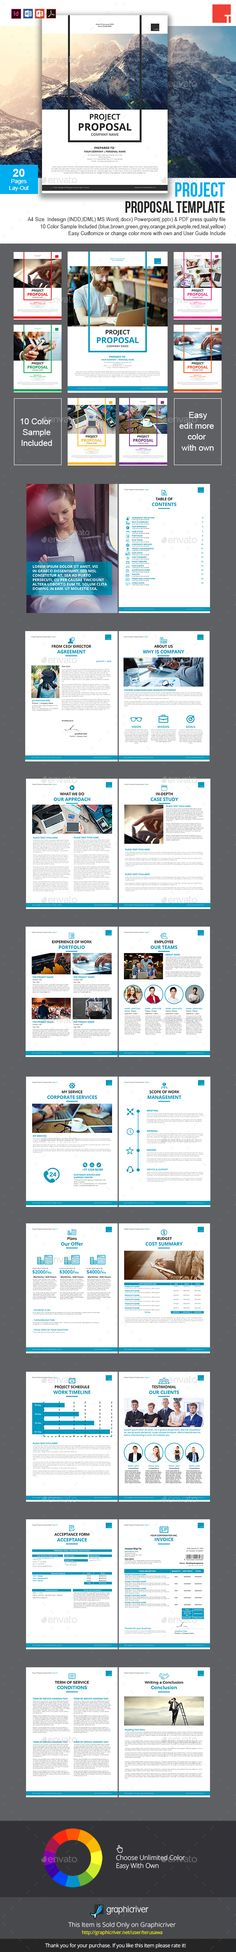 Content Marketing Proposal Marketing proposal